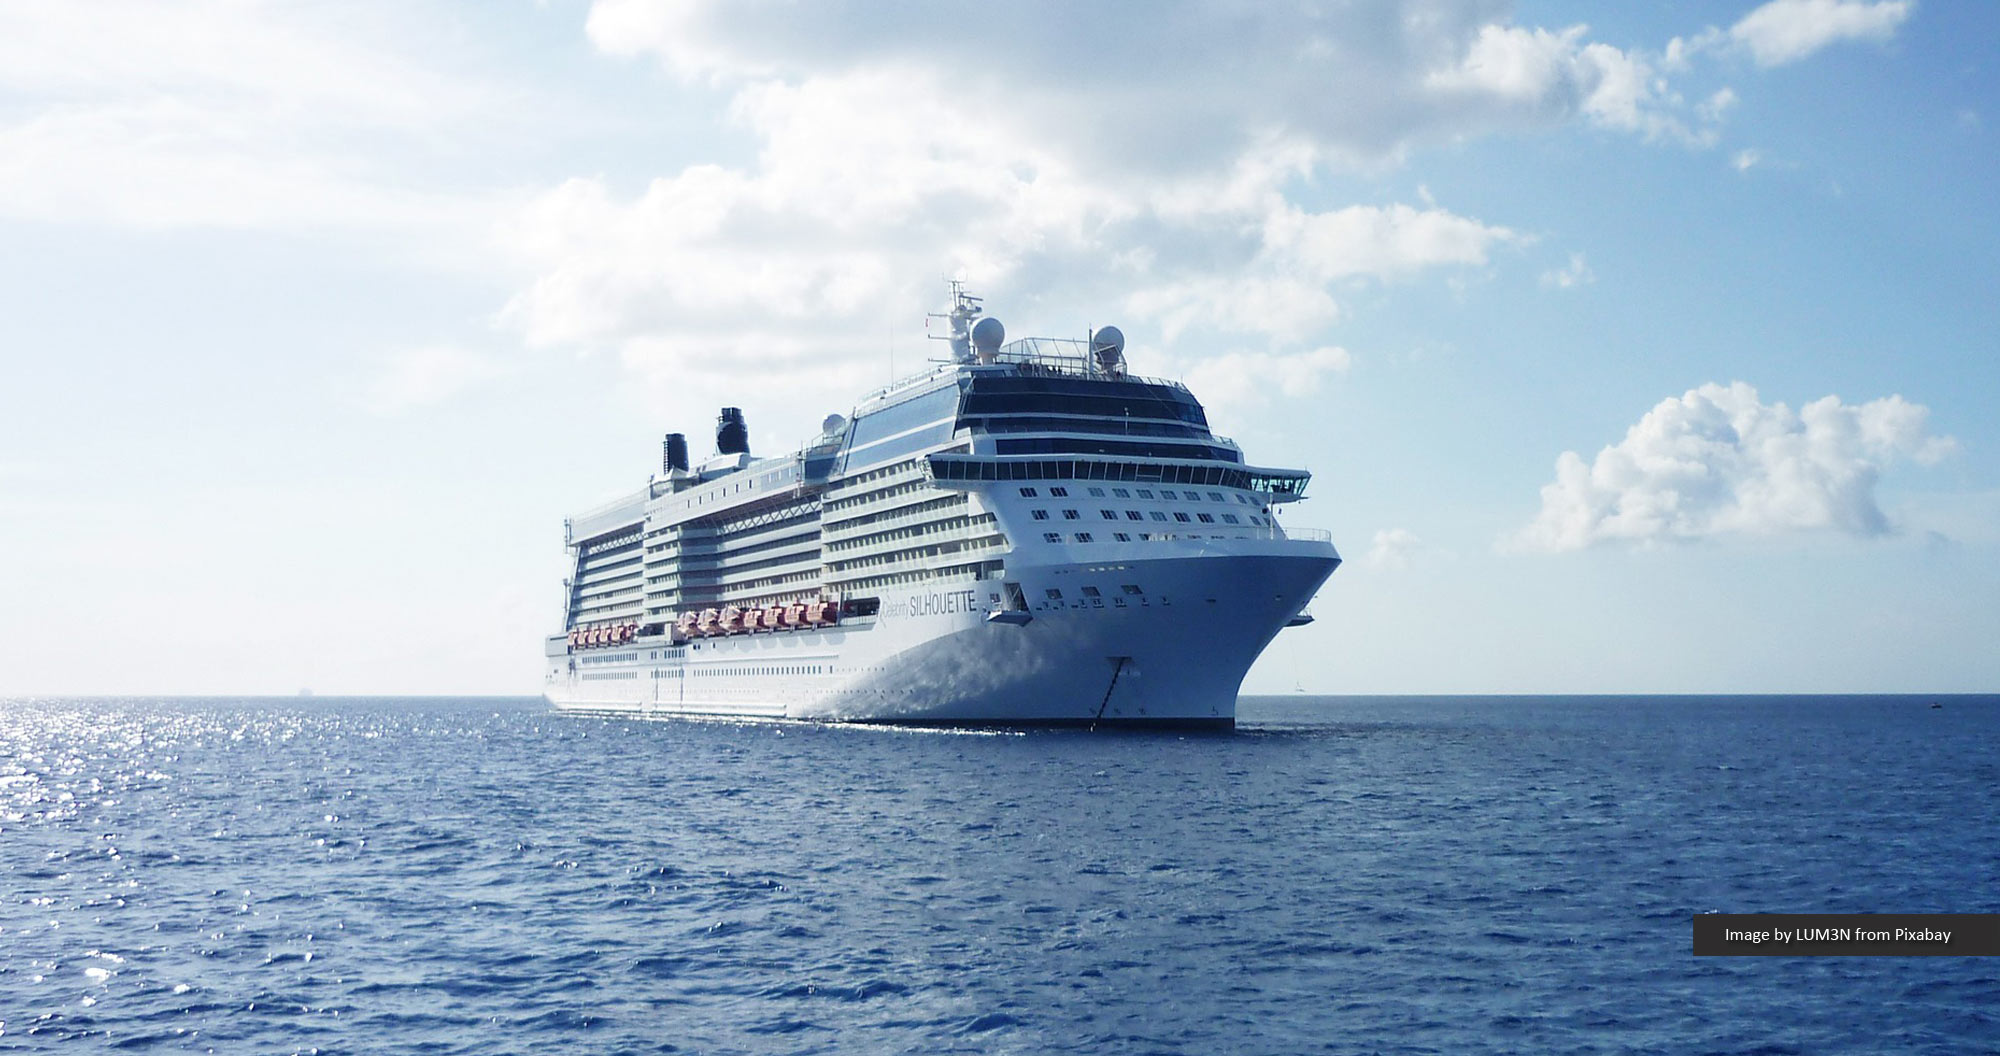 Explore The Beauty Of Caribbean: Luxury Cruise Ship Tour Vacation Packages